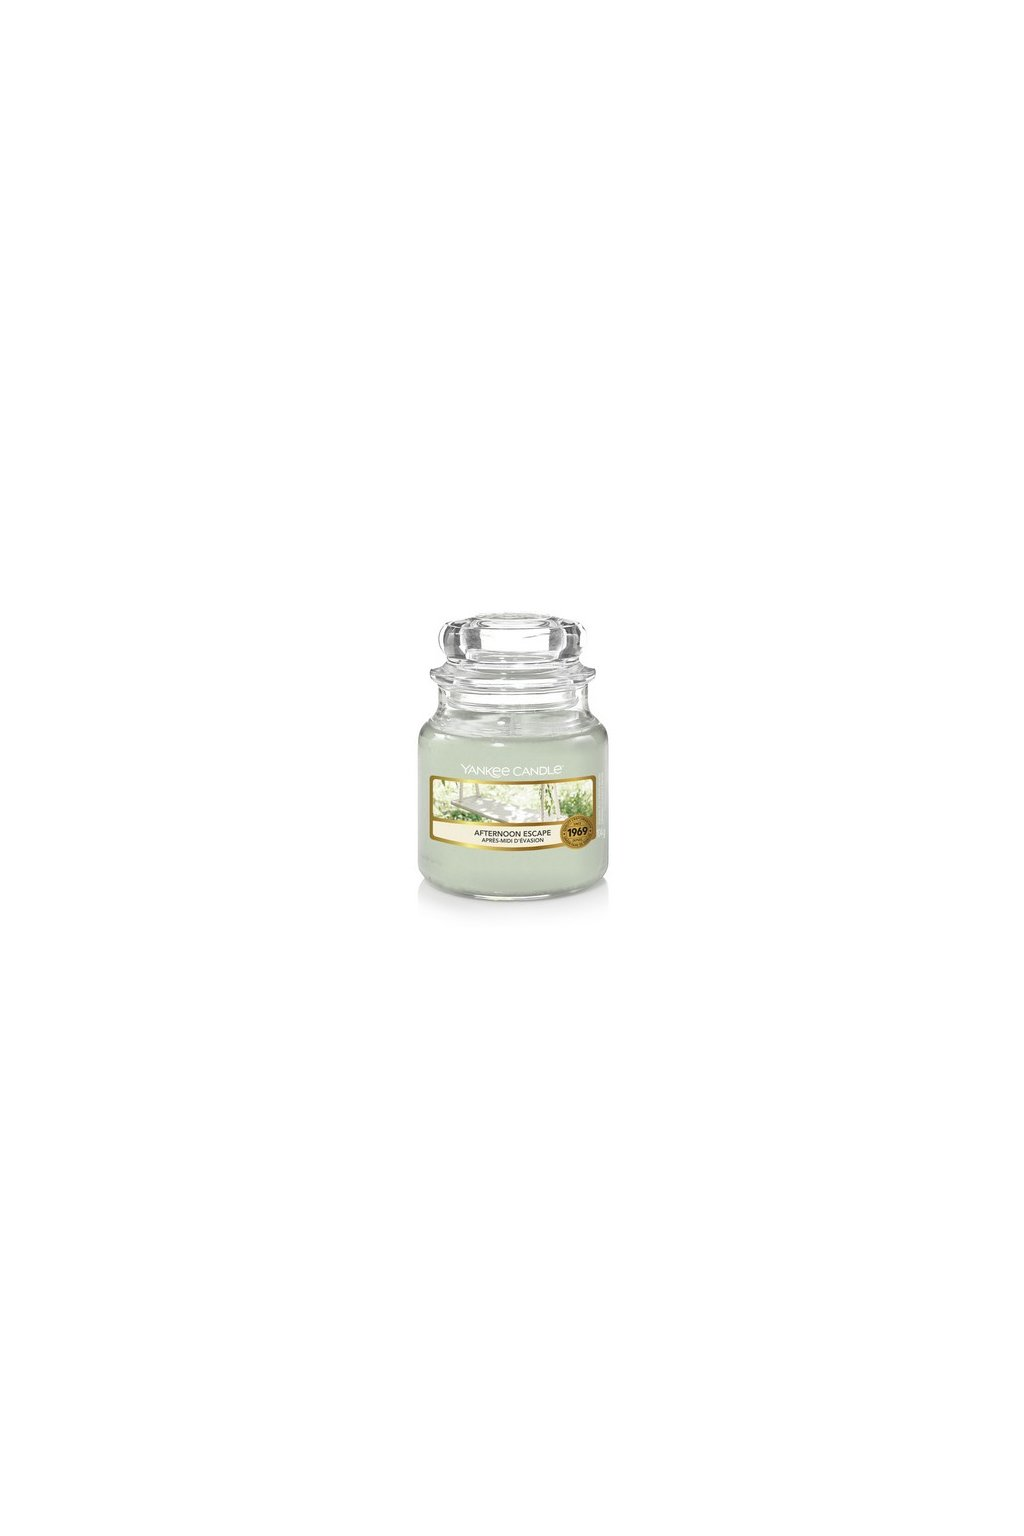 Yankee Candle Afternoon Escape 104g